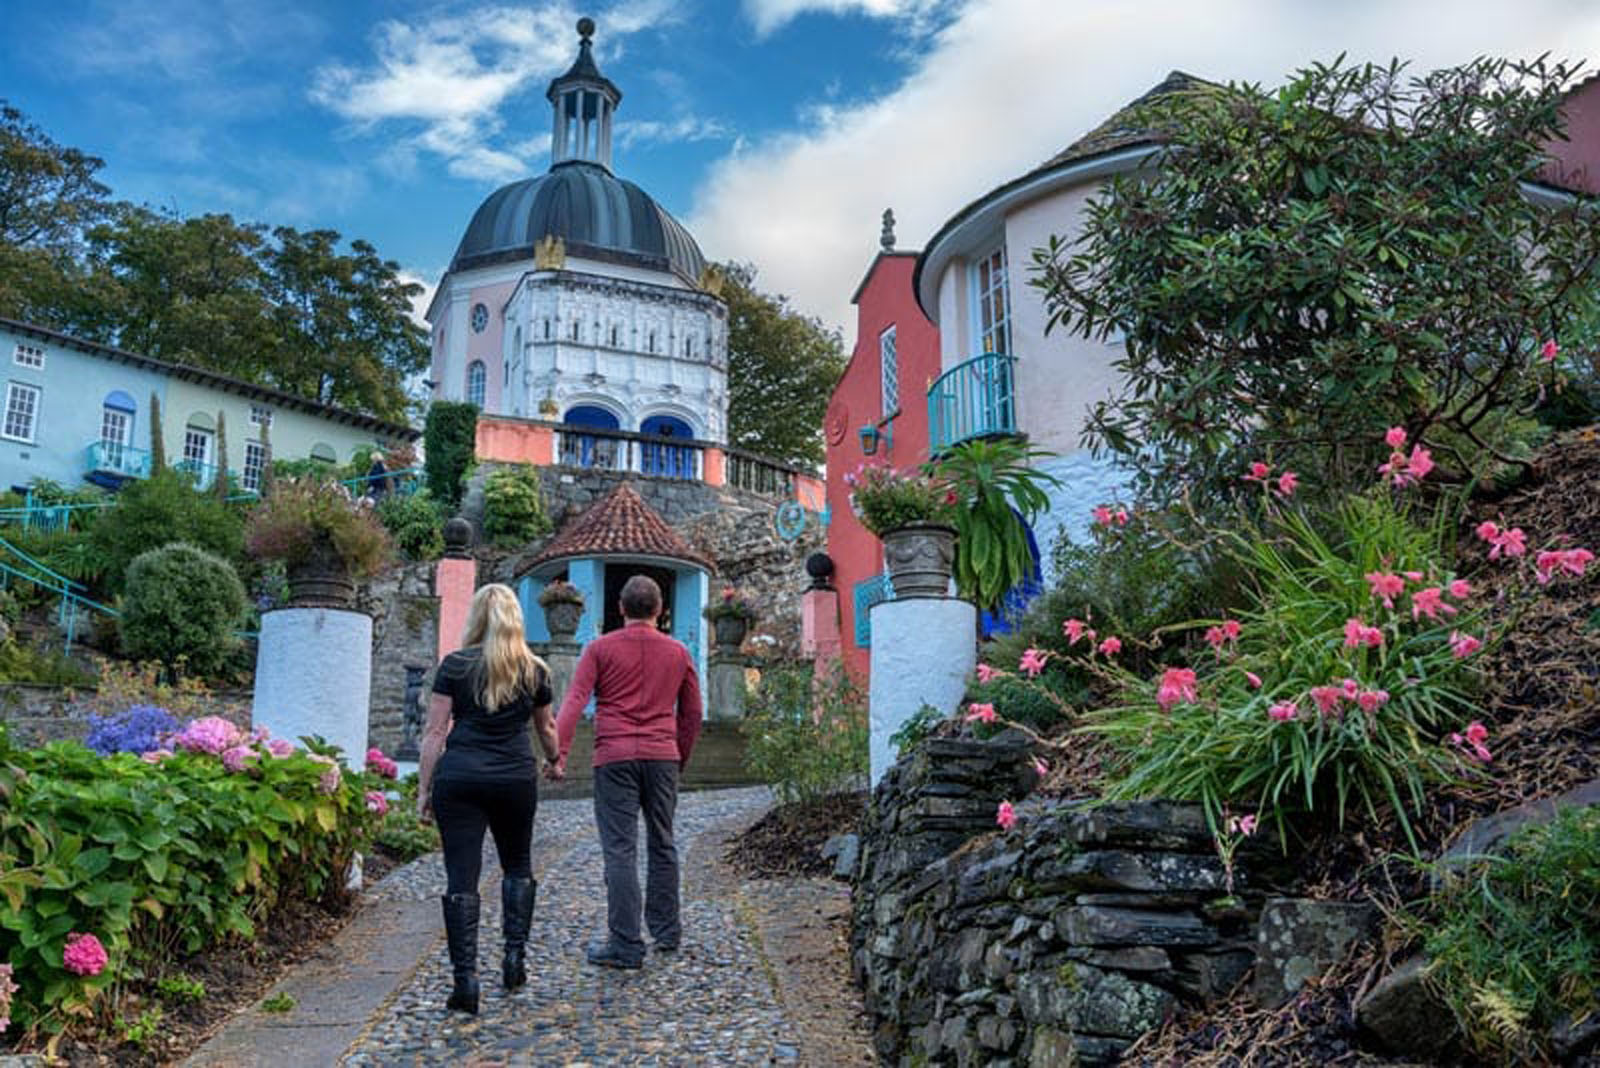 when you visit europe go to wales portmerion